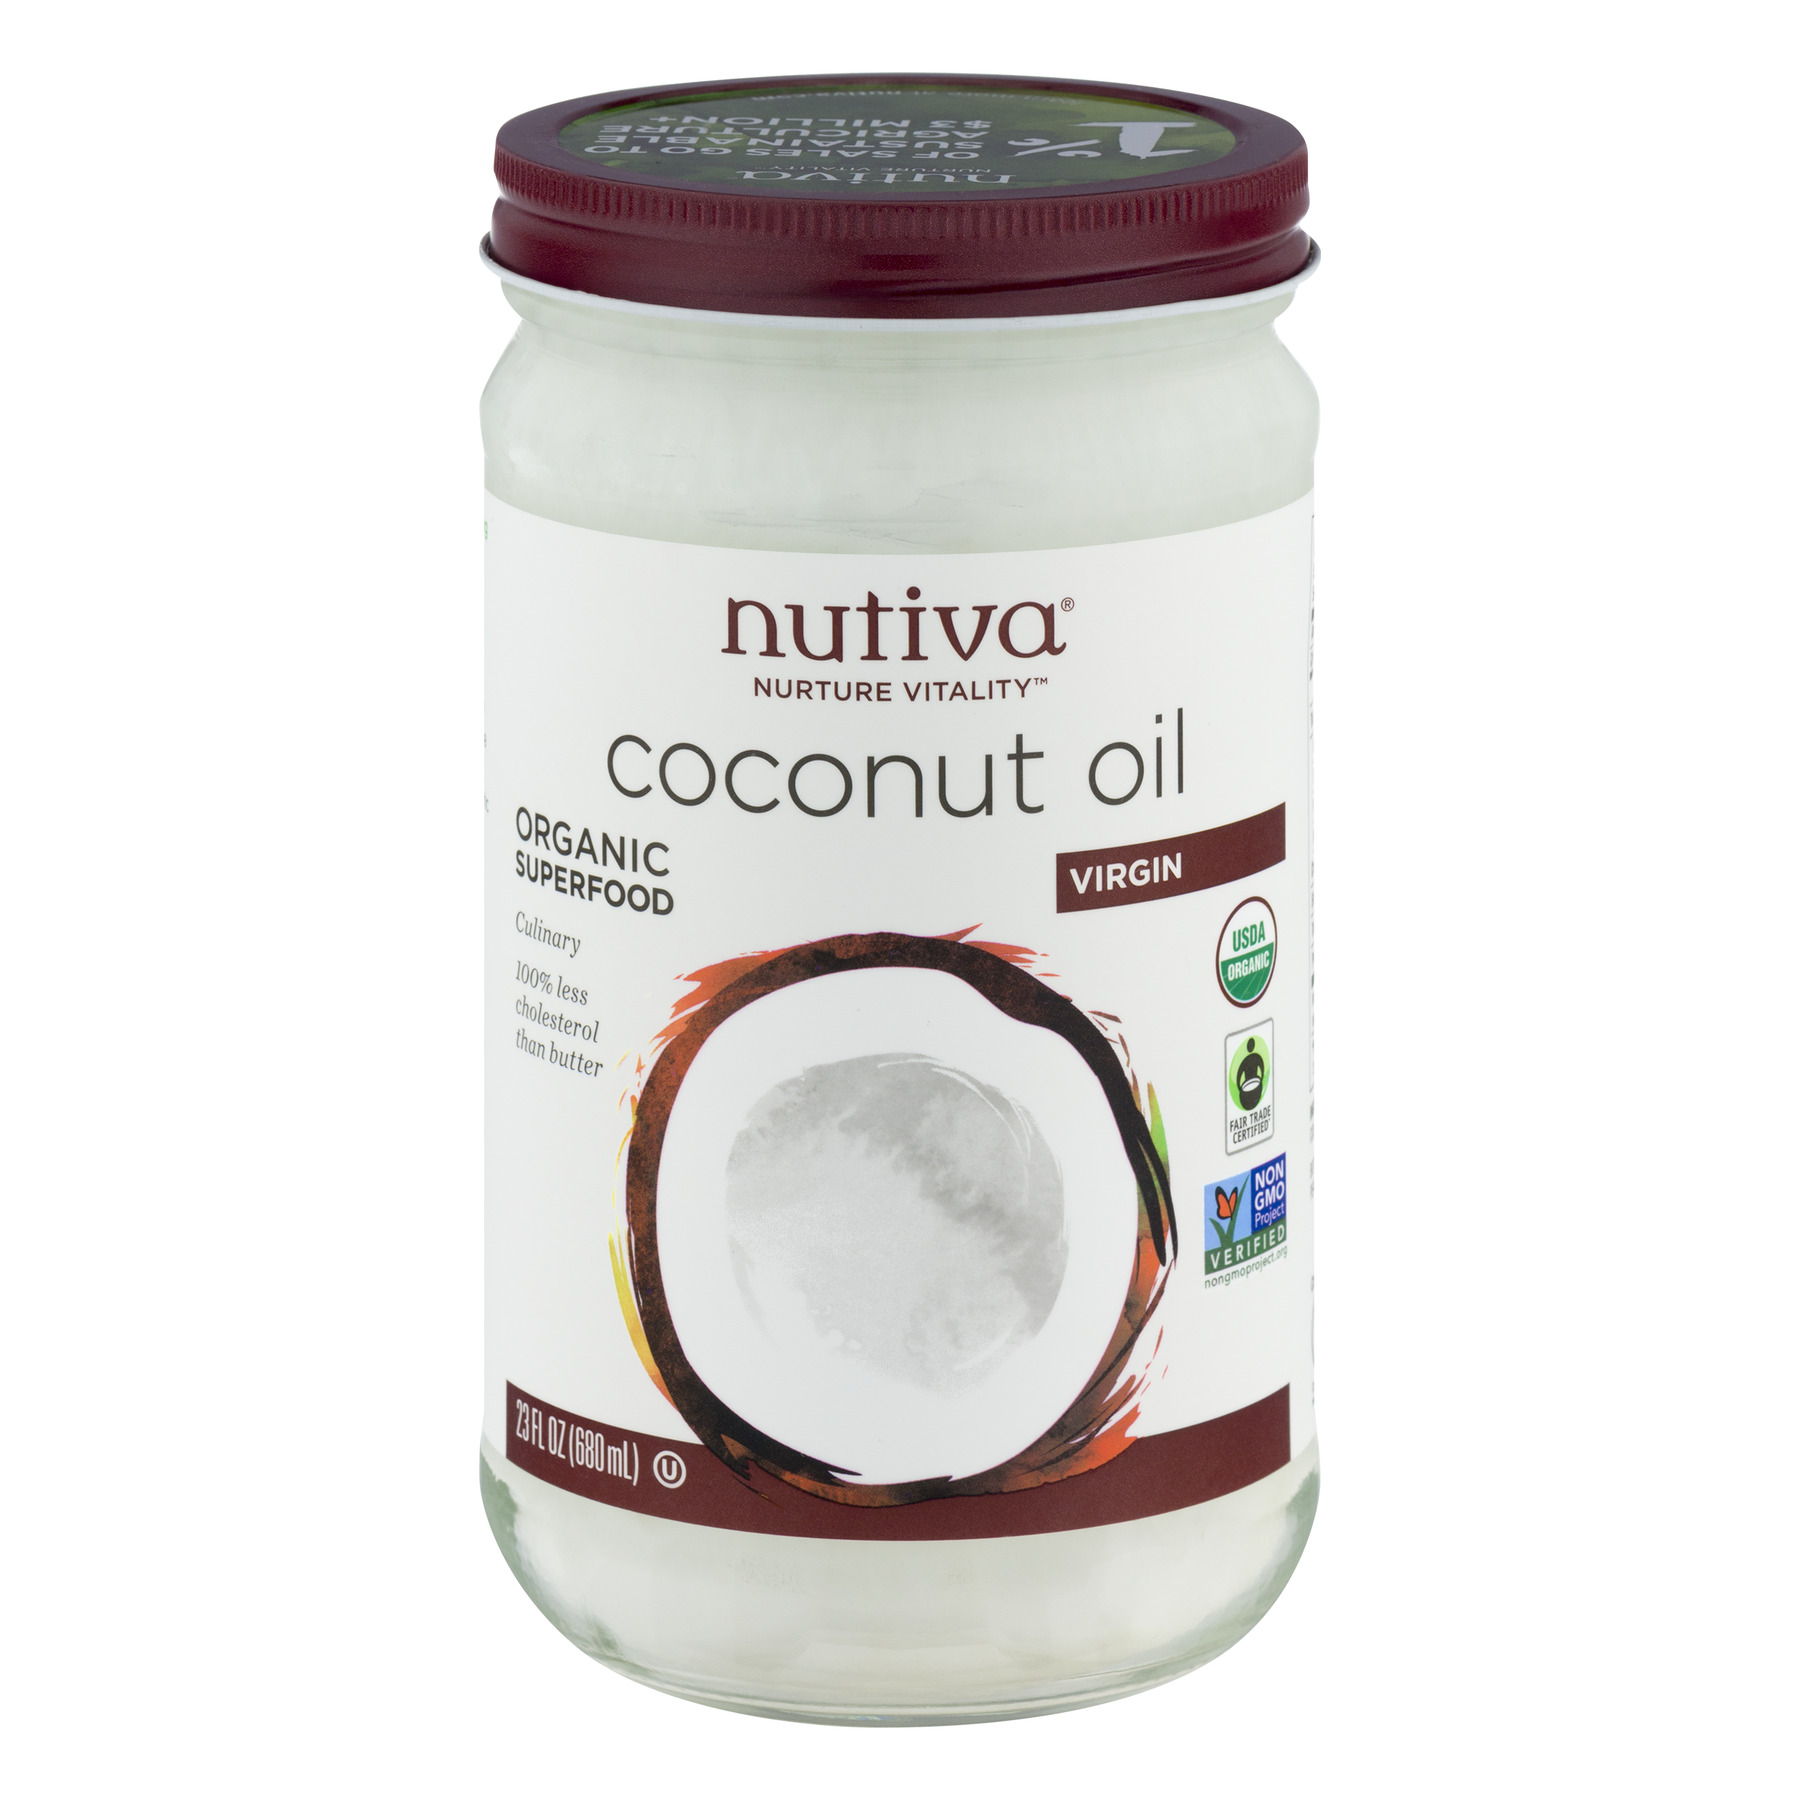 Nutiva Coconut Oil Virgin, 23.0 FL OZ